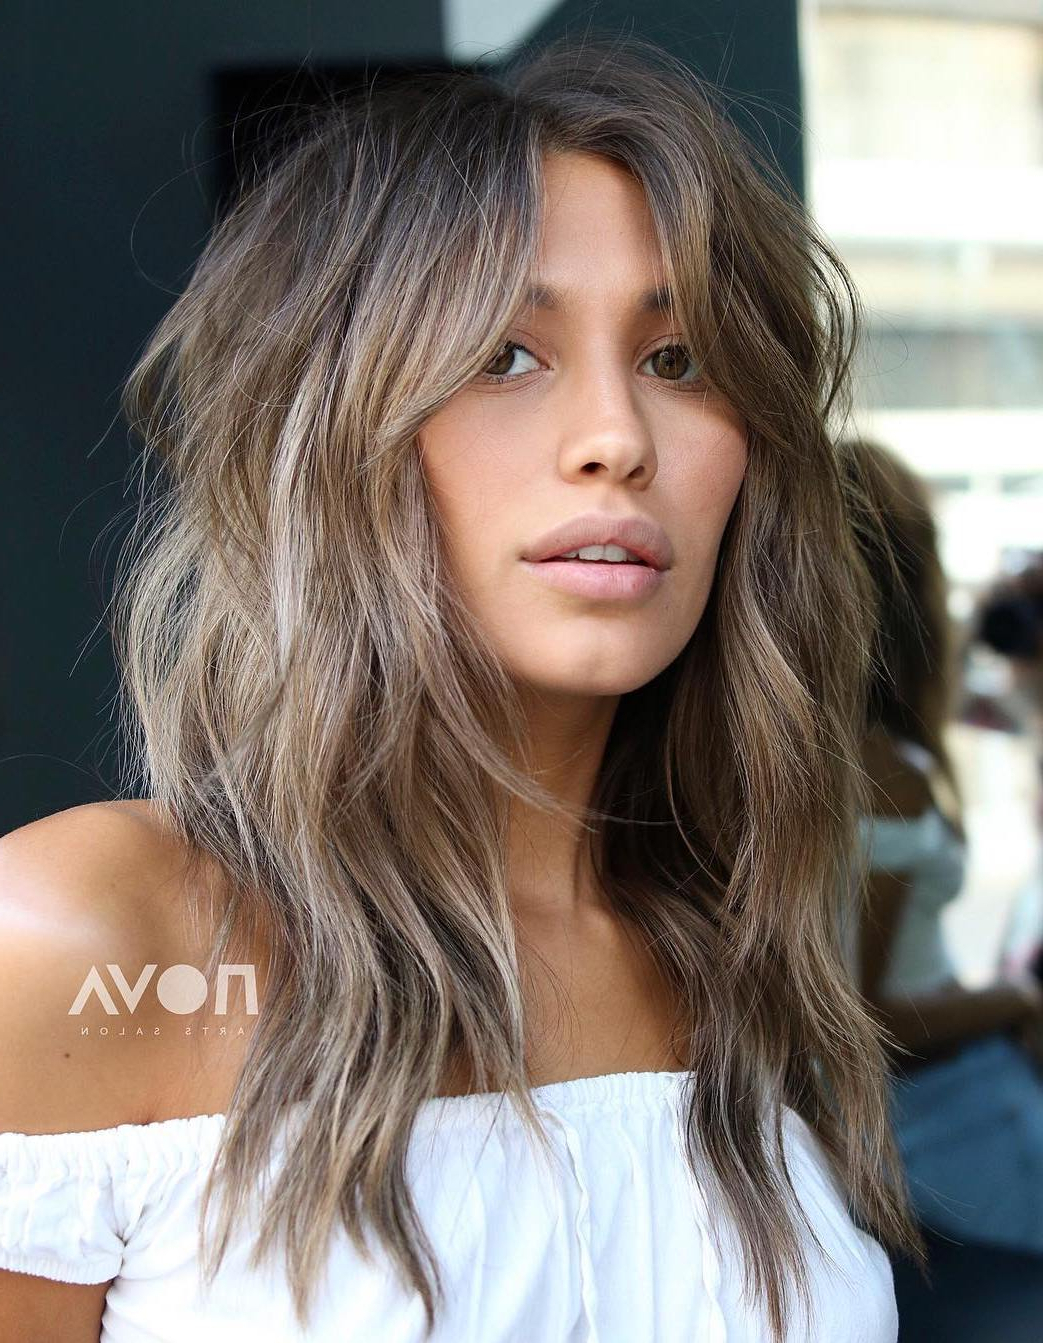 40 Modern Shag Haircuts For Women To Make A Splash Intended For Fashionable Medium Shag Hairstyles With Long Side Bangs (View 2 of 20)